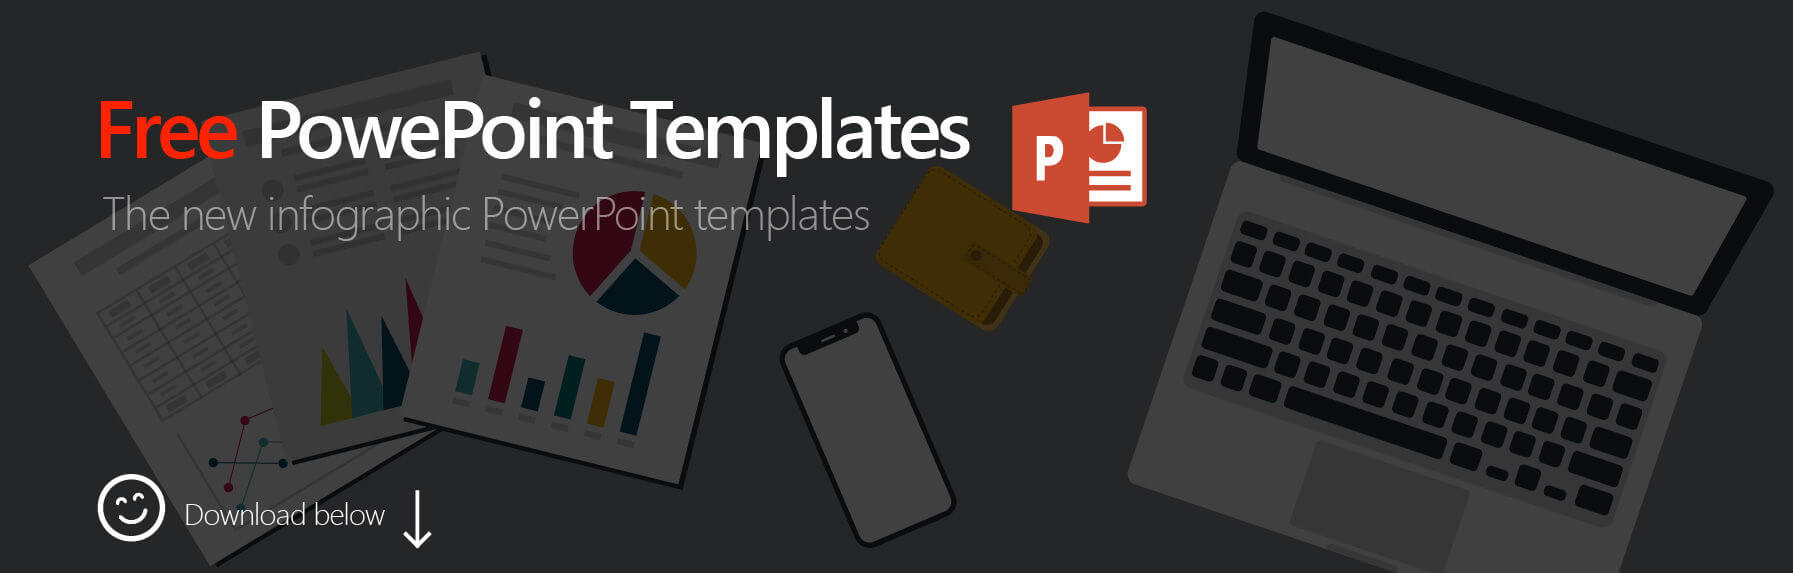 Free Powerpoint Templates & Google Slides Themes Regarding Powerpoint 2007 Template Free Download